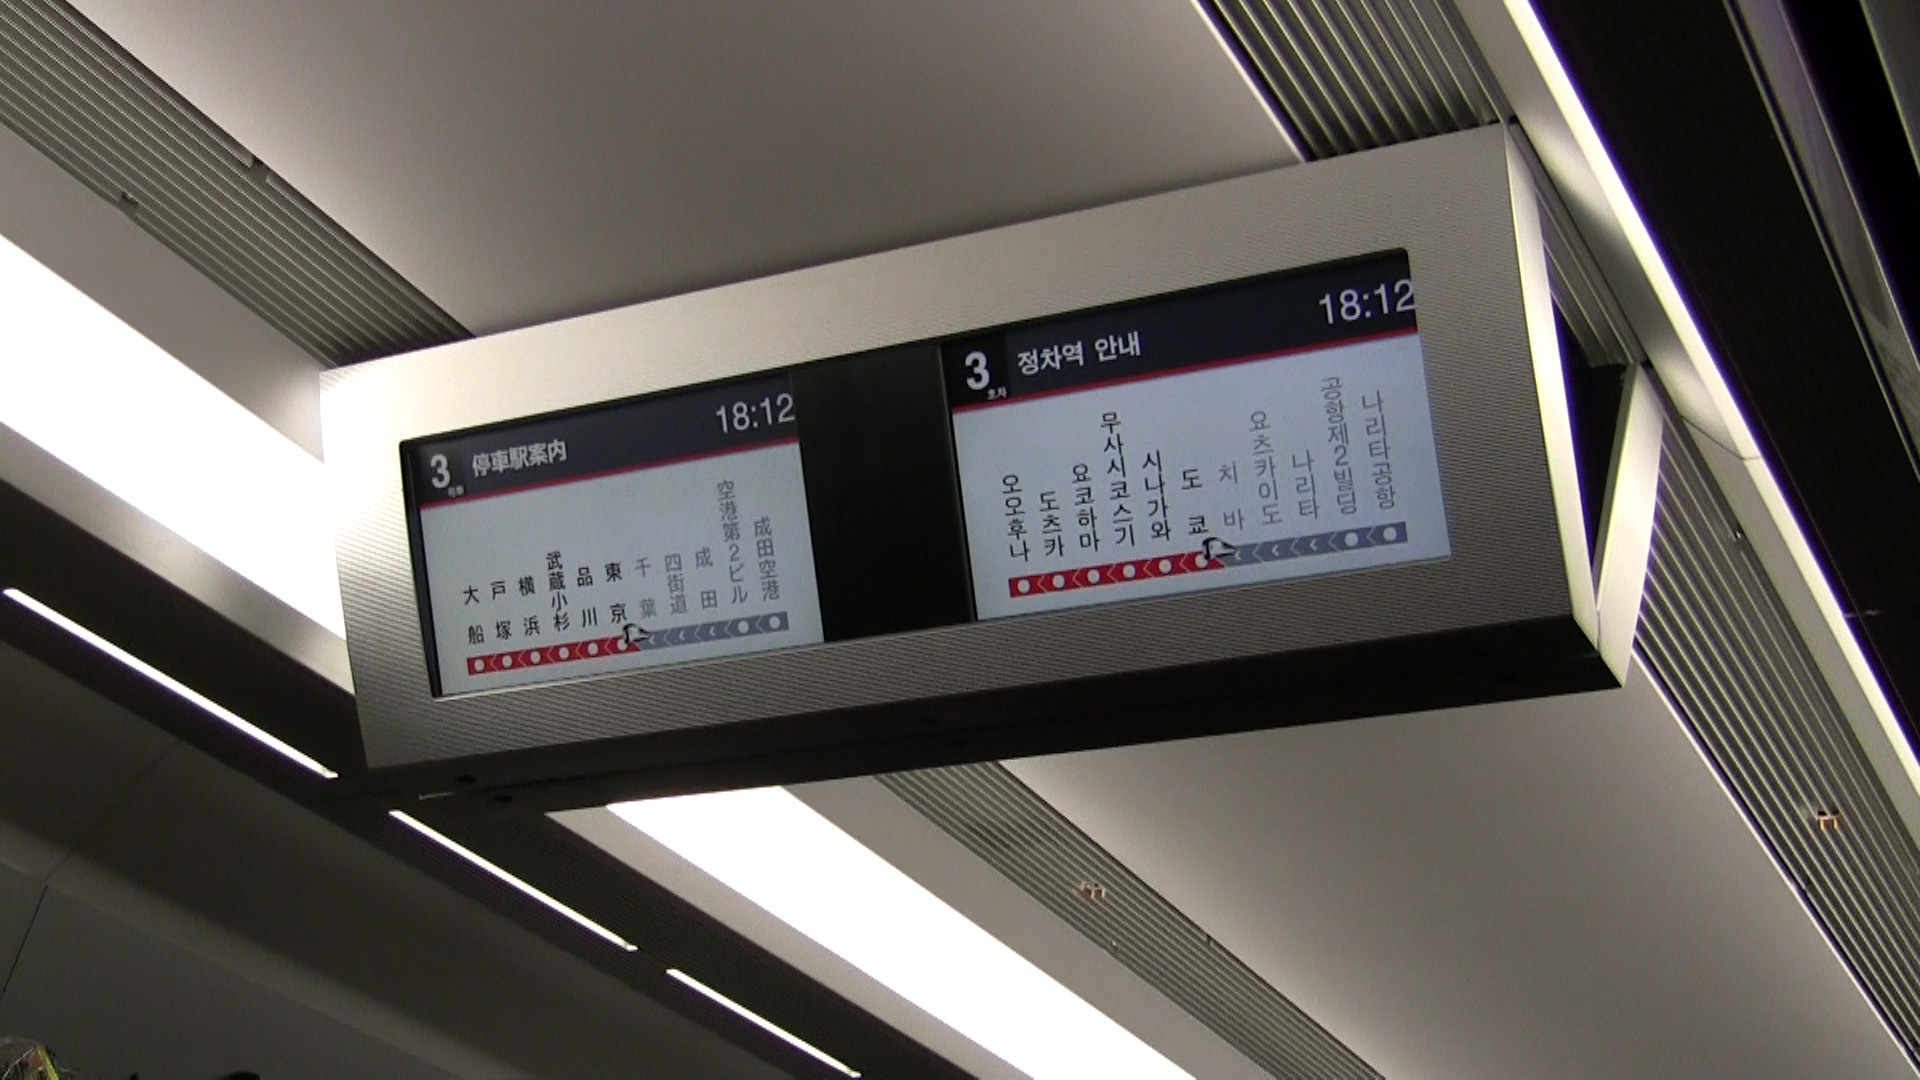 The TVs in the Narita Express showing our location.